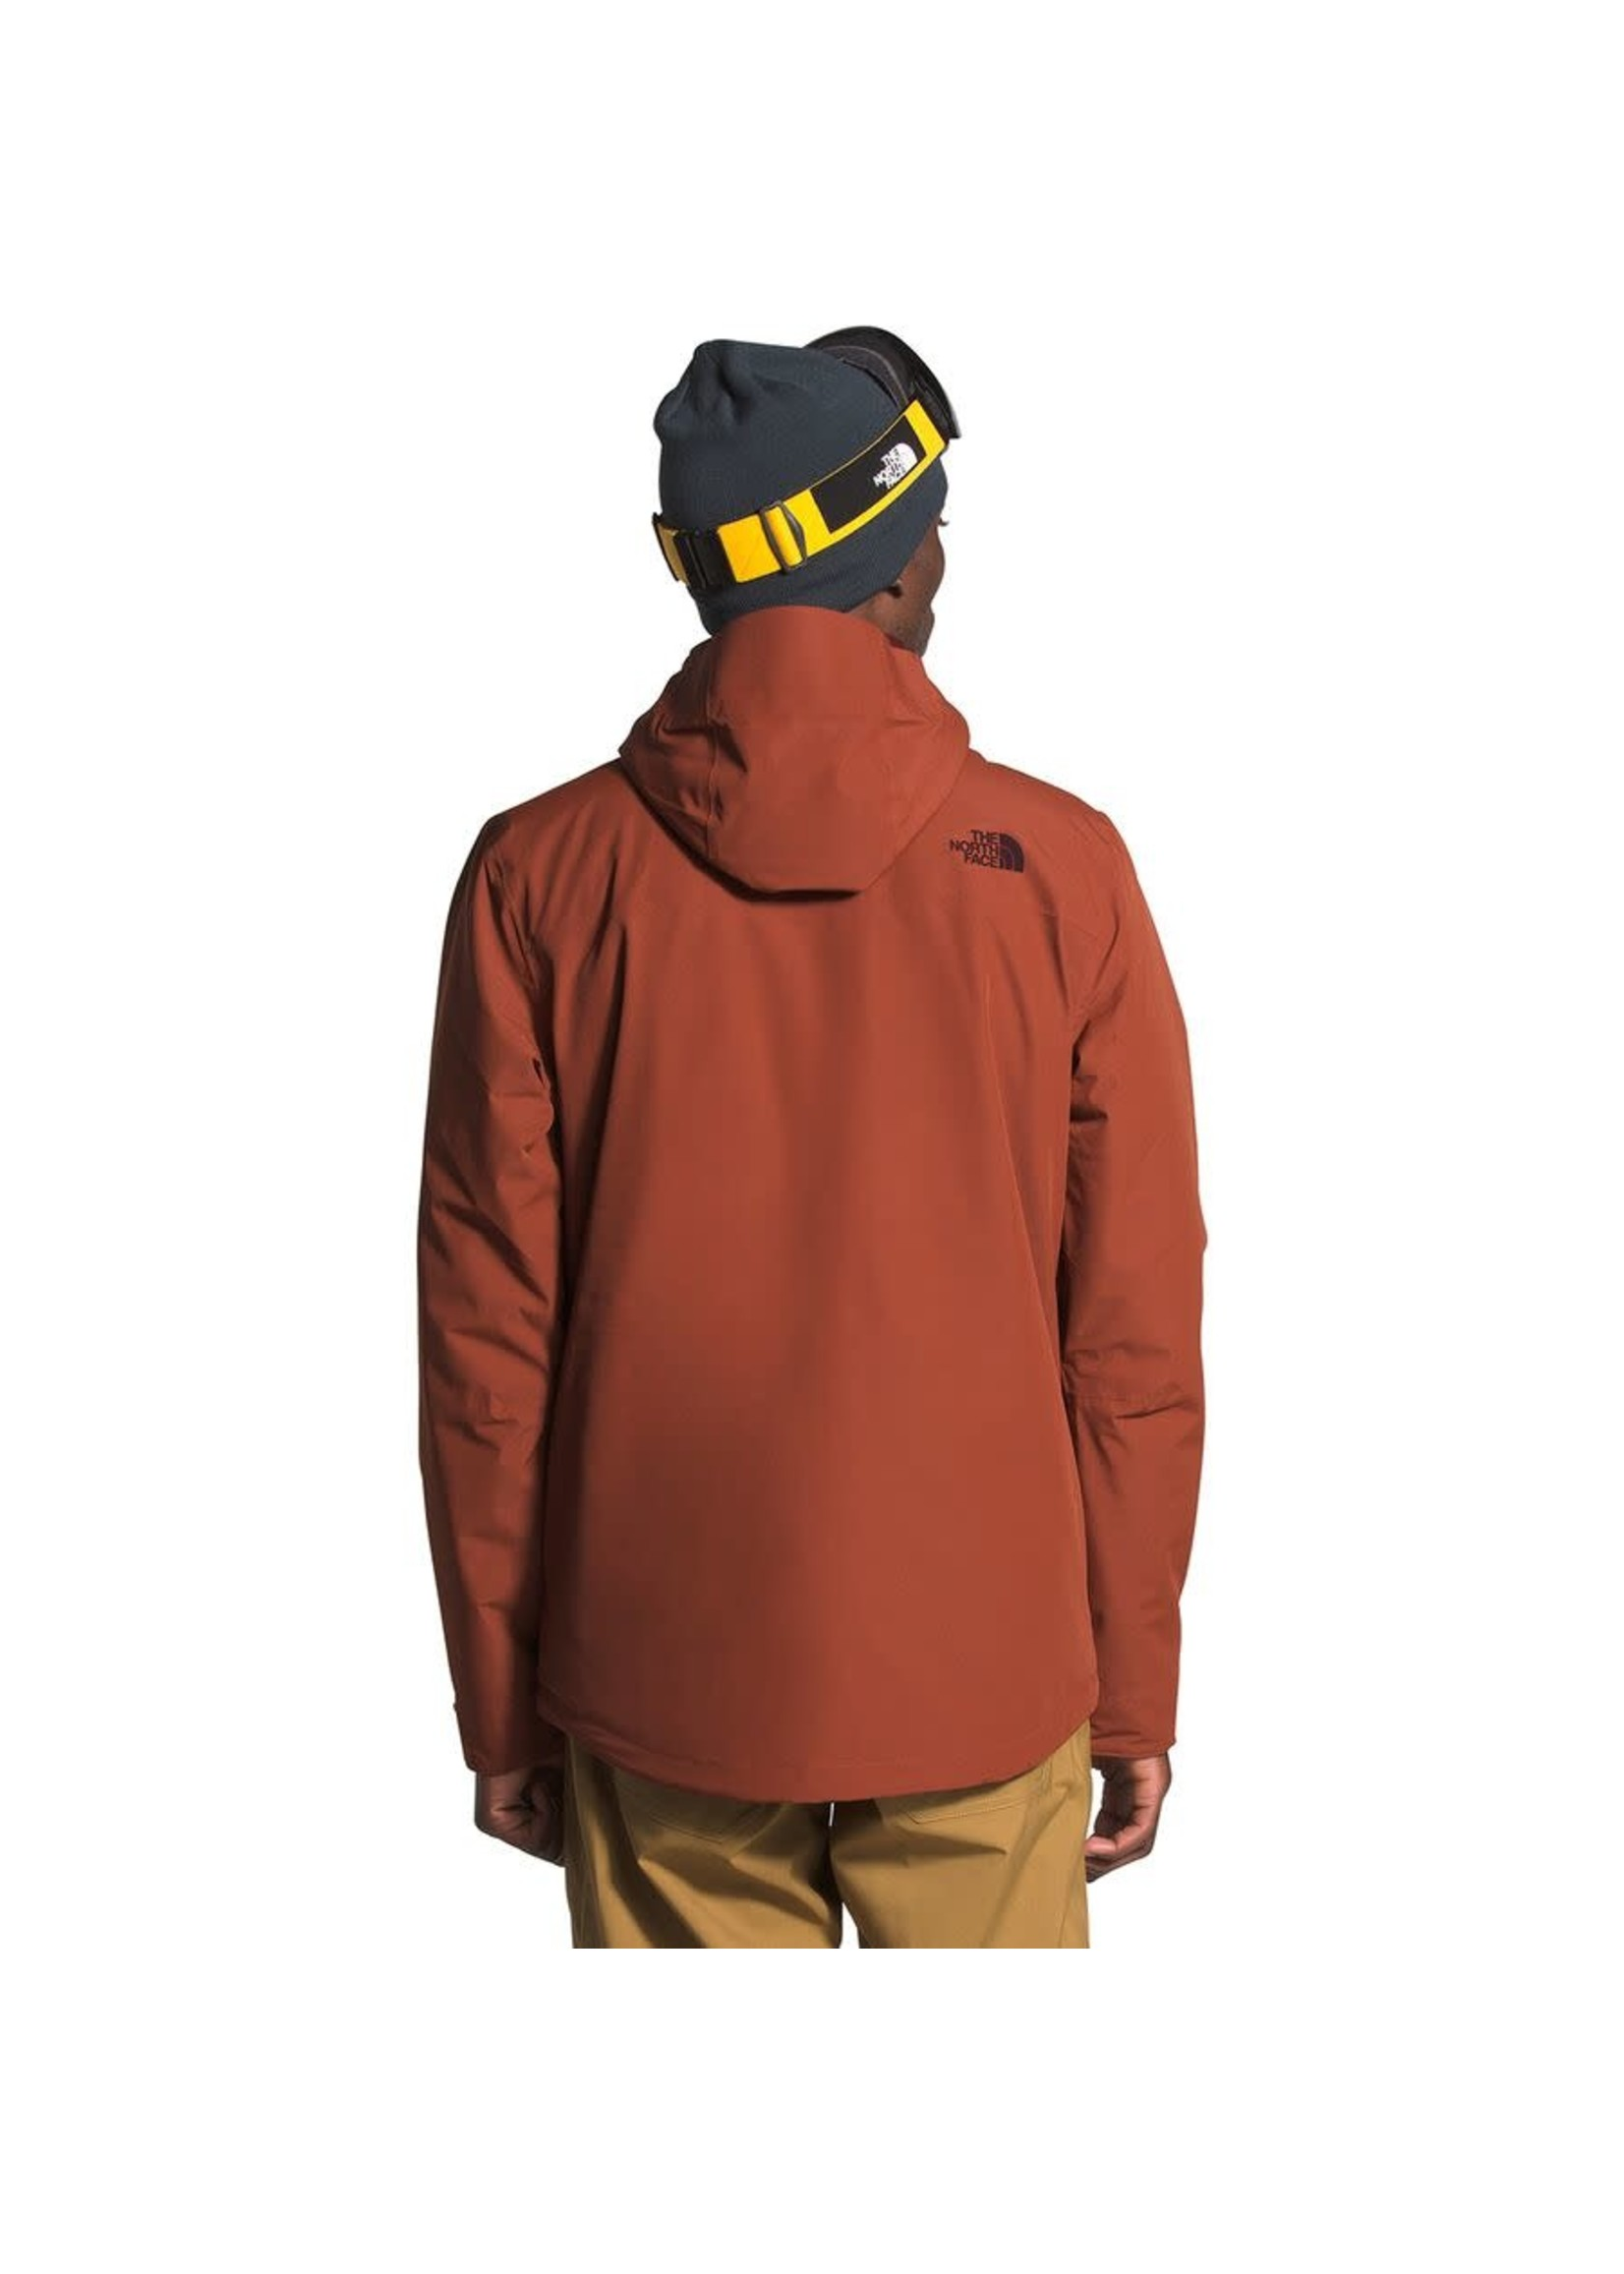 THE NORTH FACE Manteau Inlux / XLarge / Brandy Brown